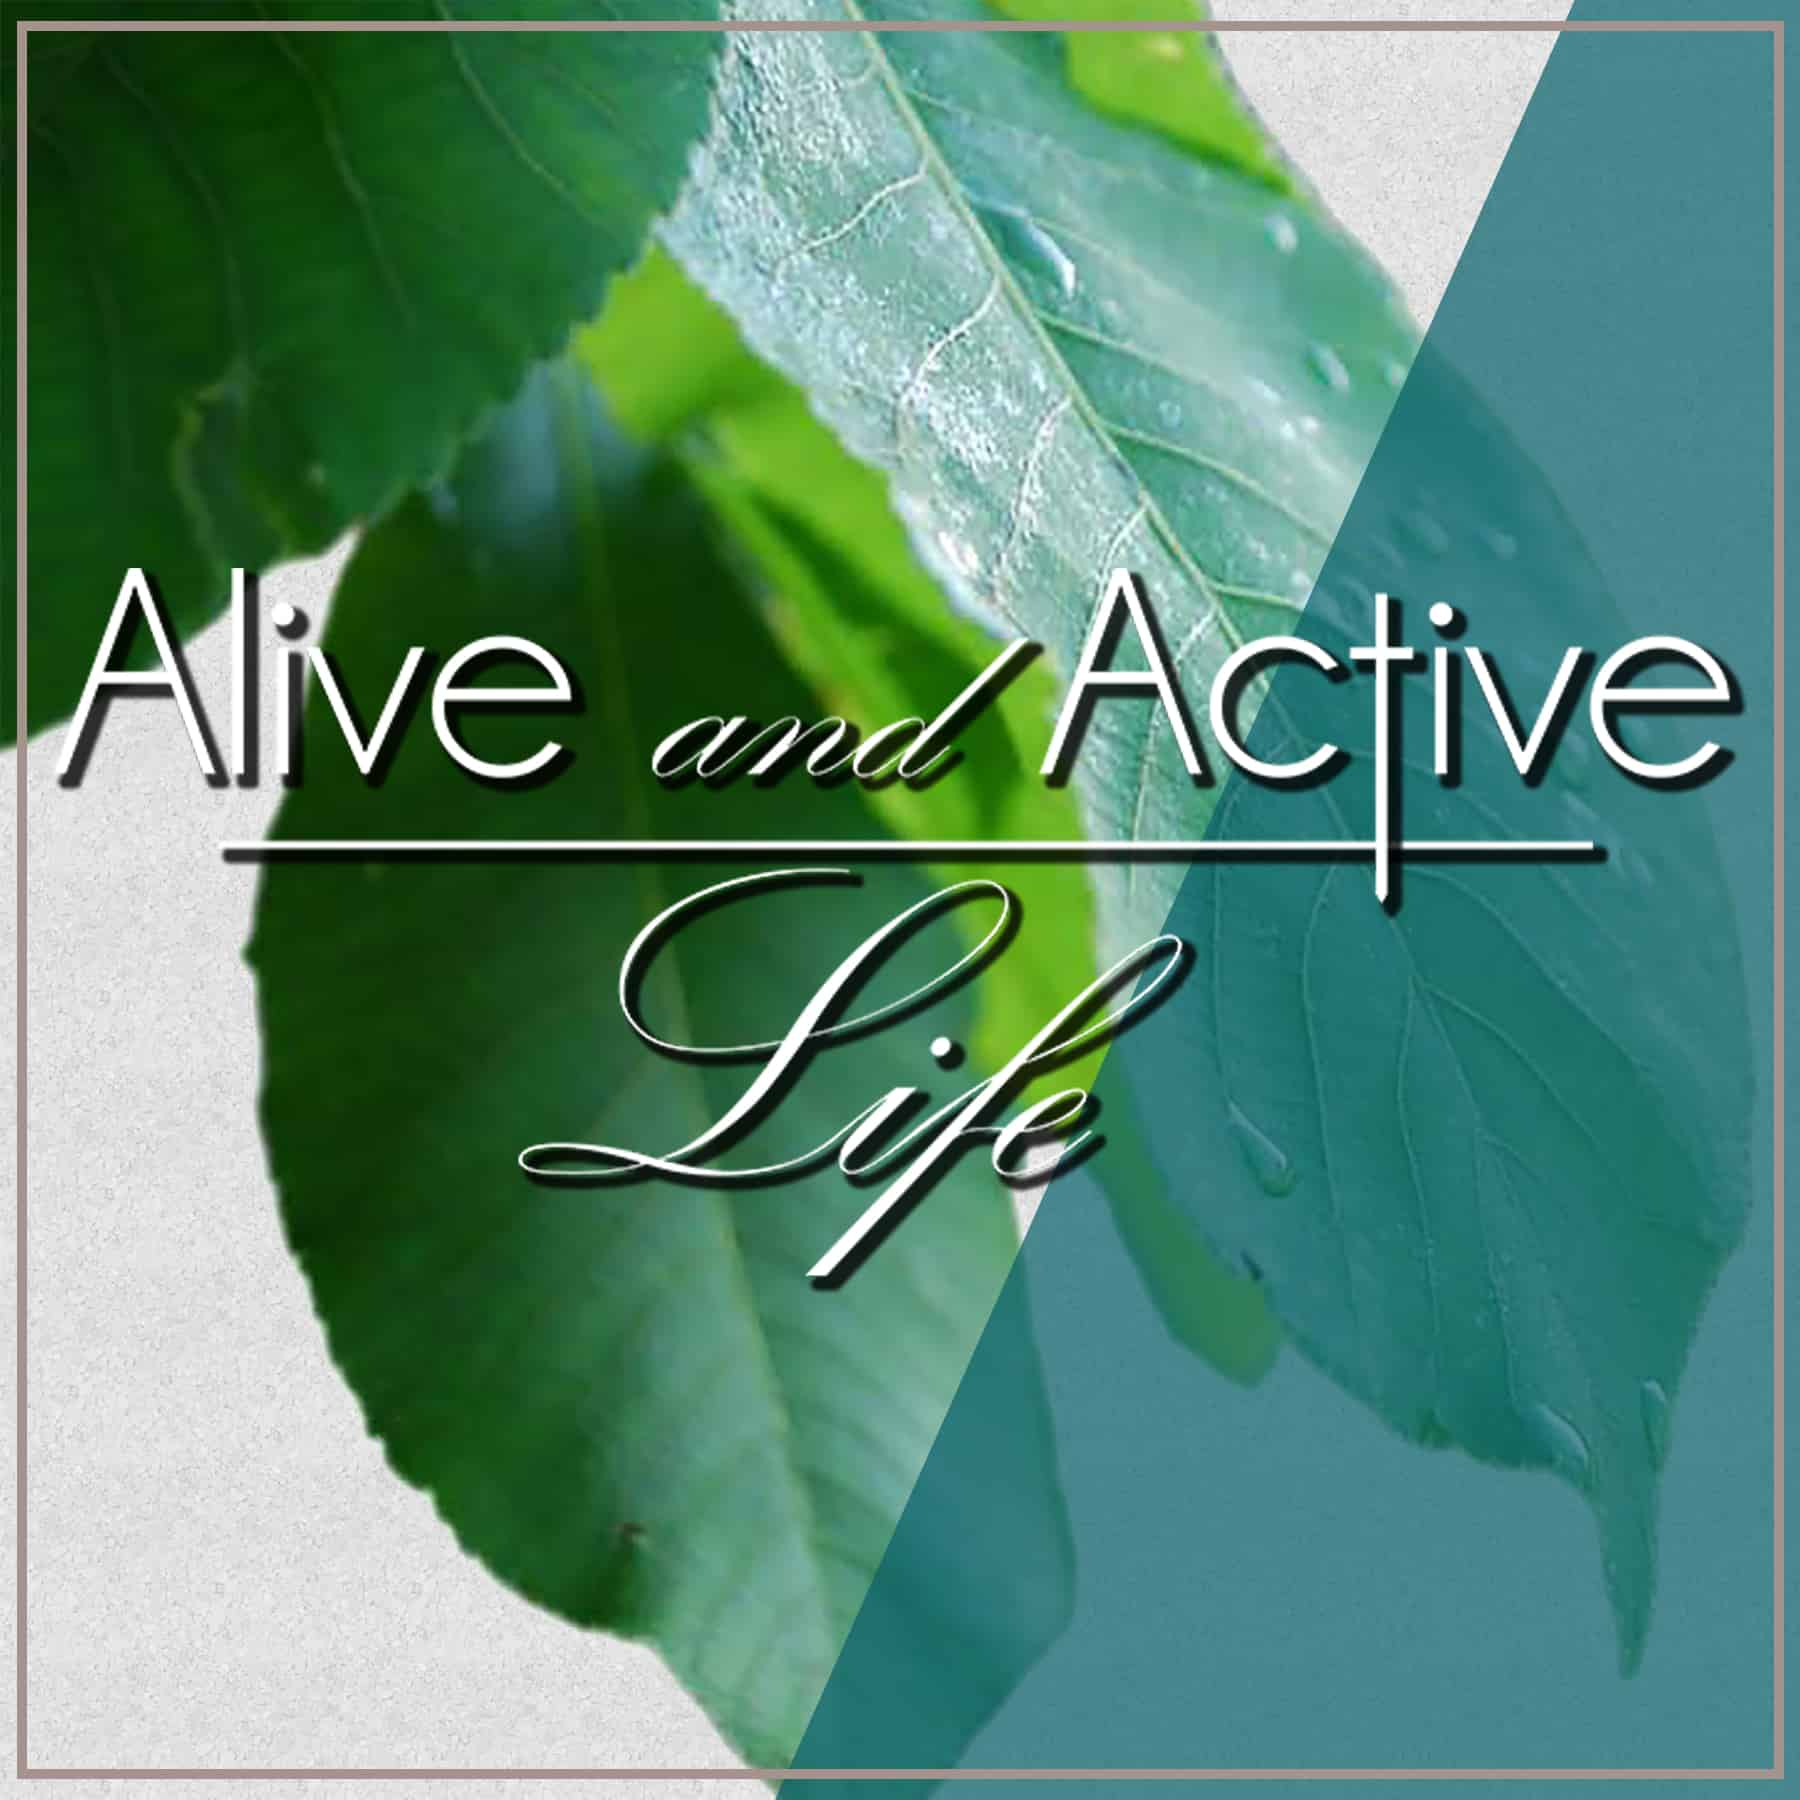 Alive and Active Life